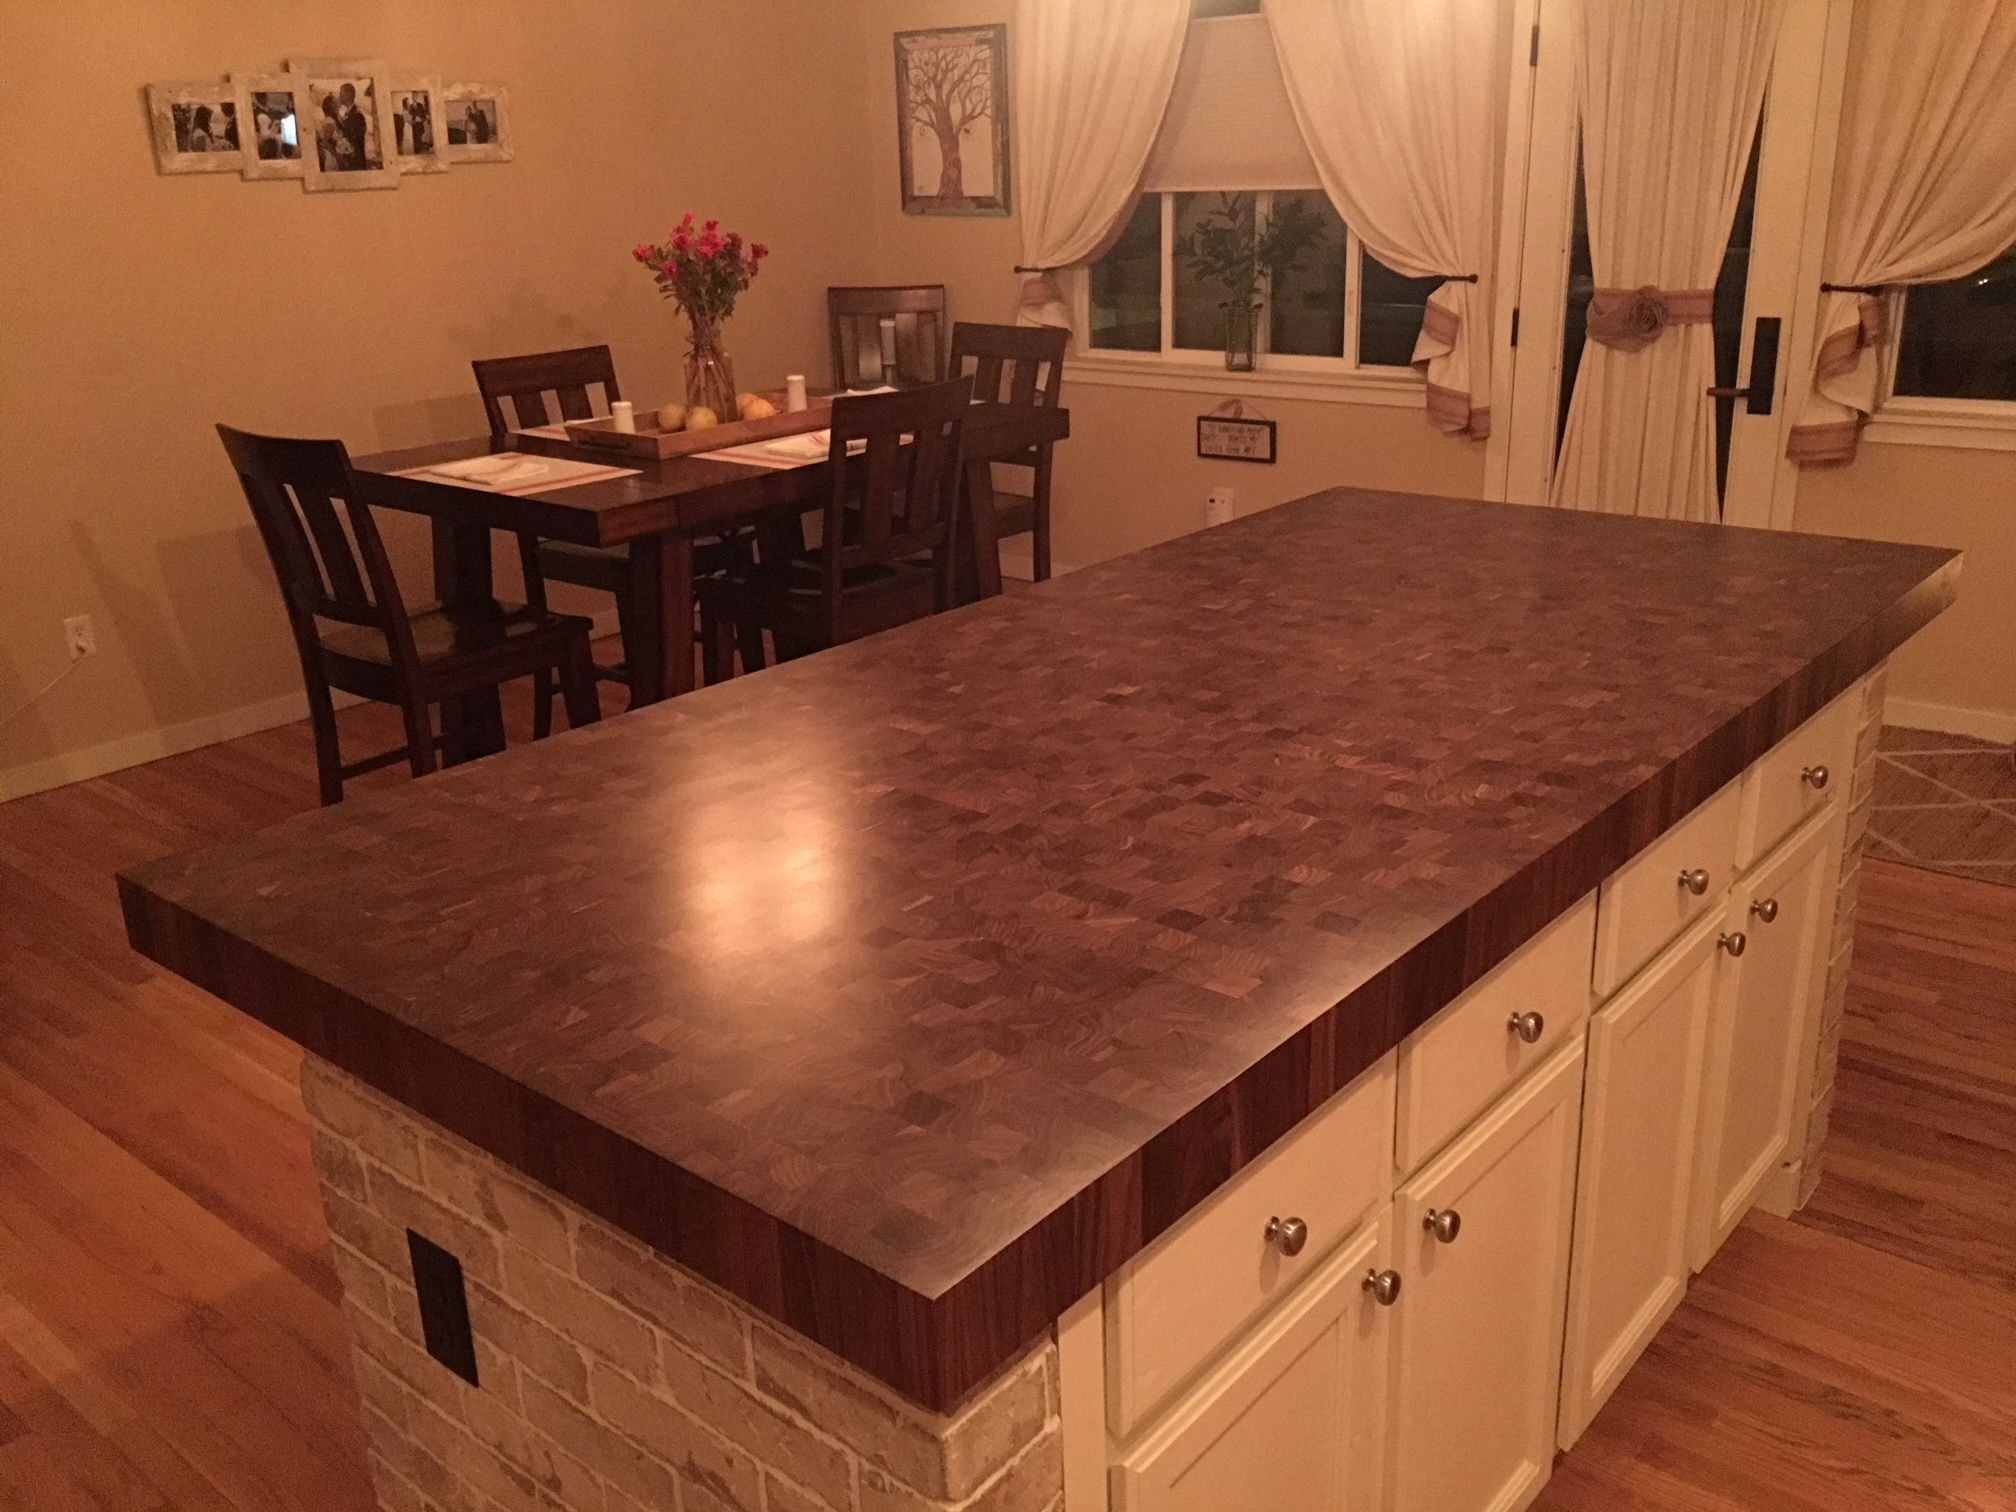 Sample Walnut End Grain Butcher Block Walnut Butcher Block Countertops Countertops Kitchen Island Countertop